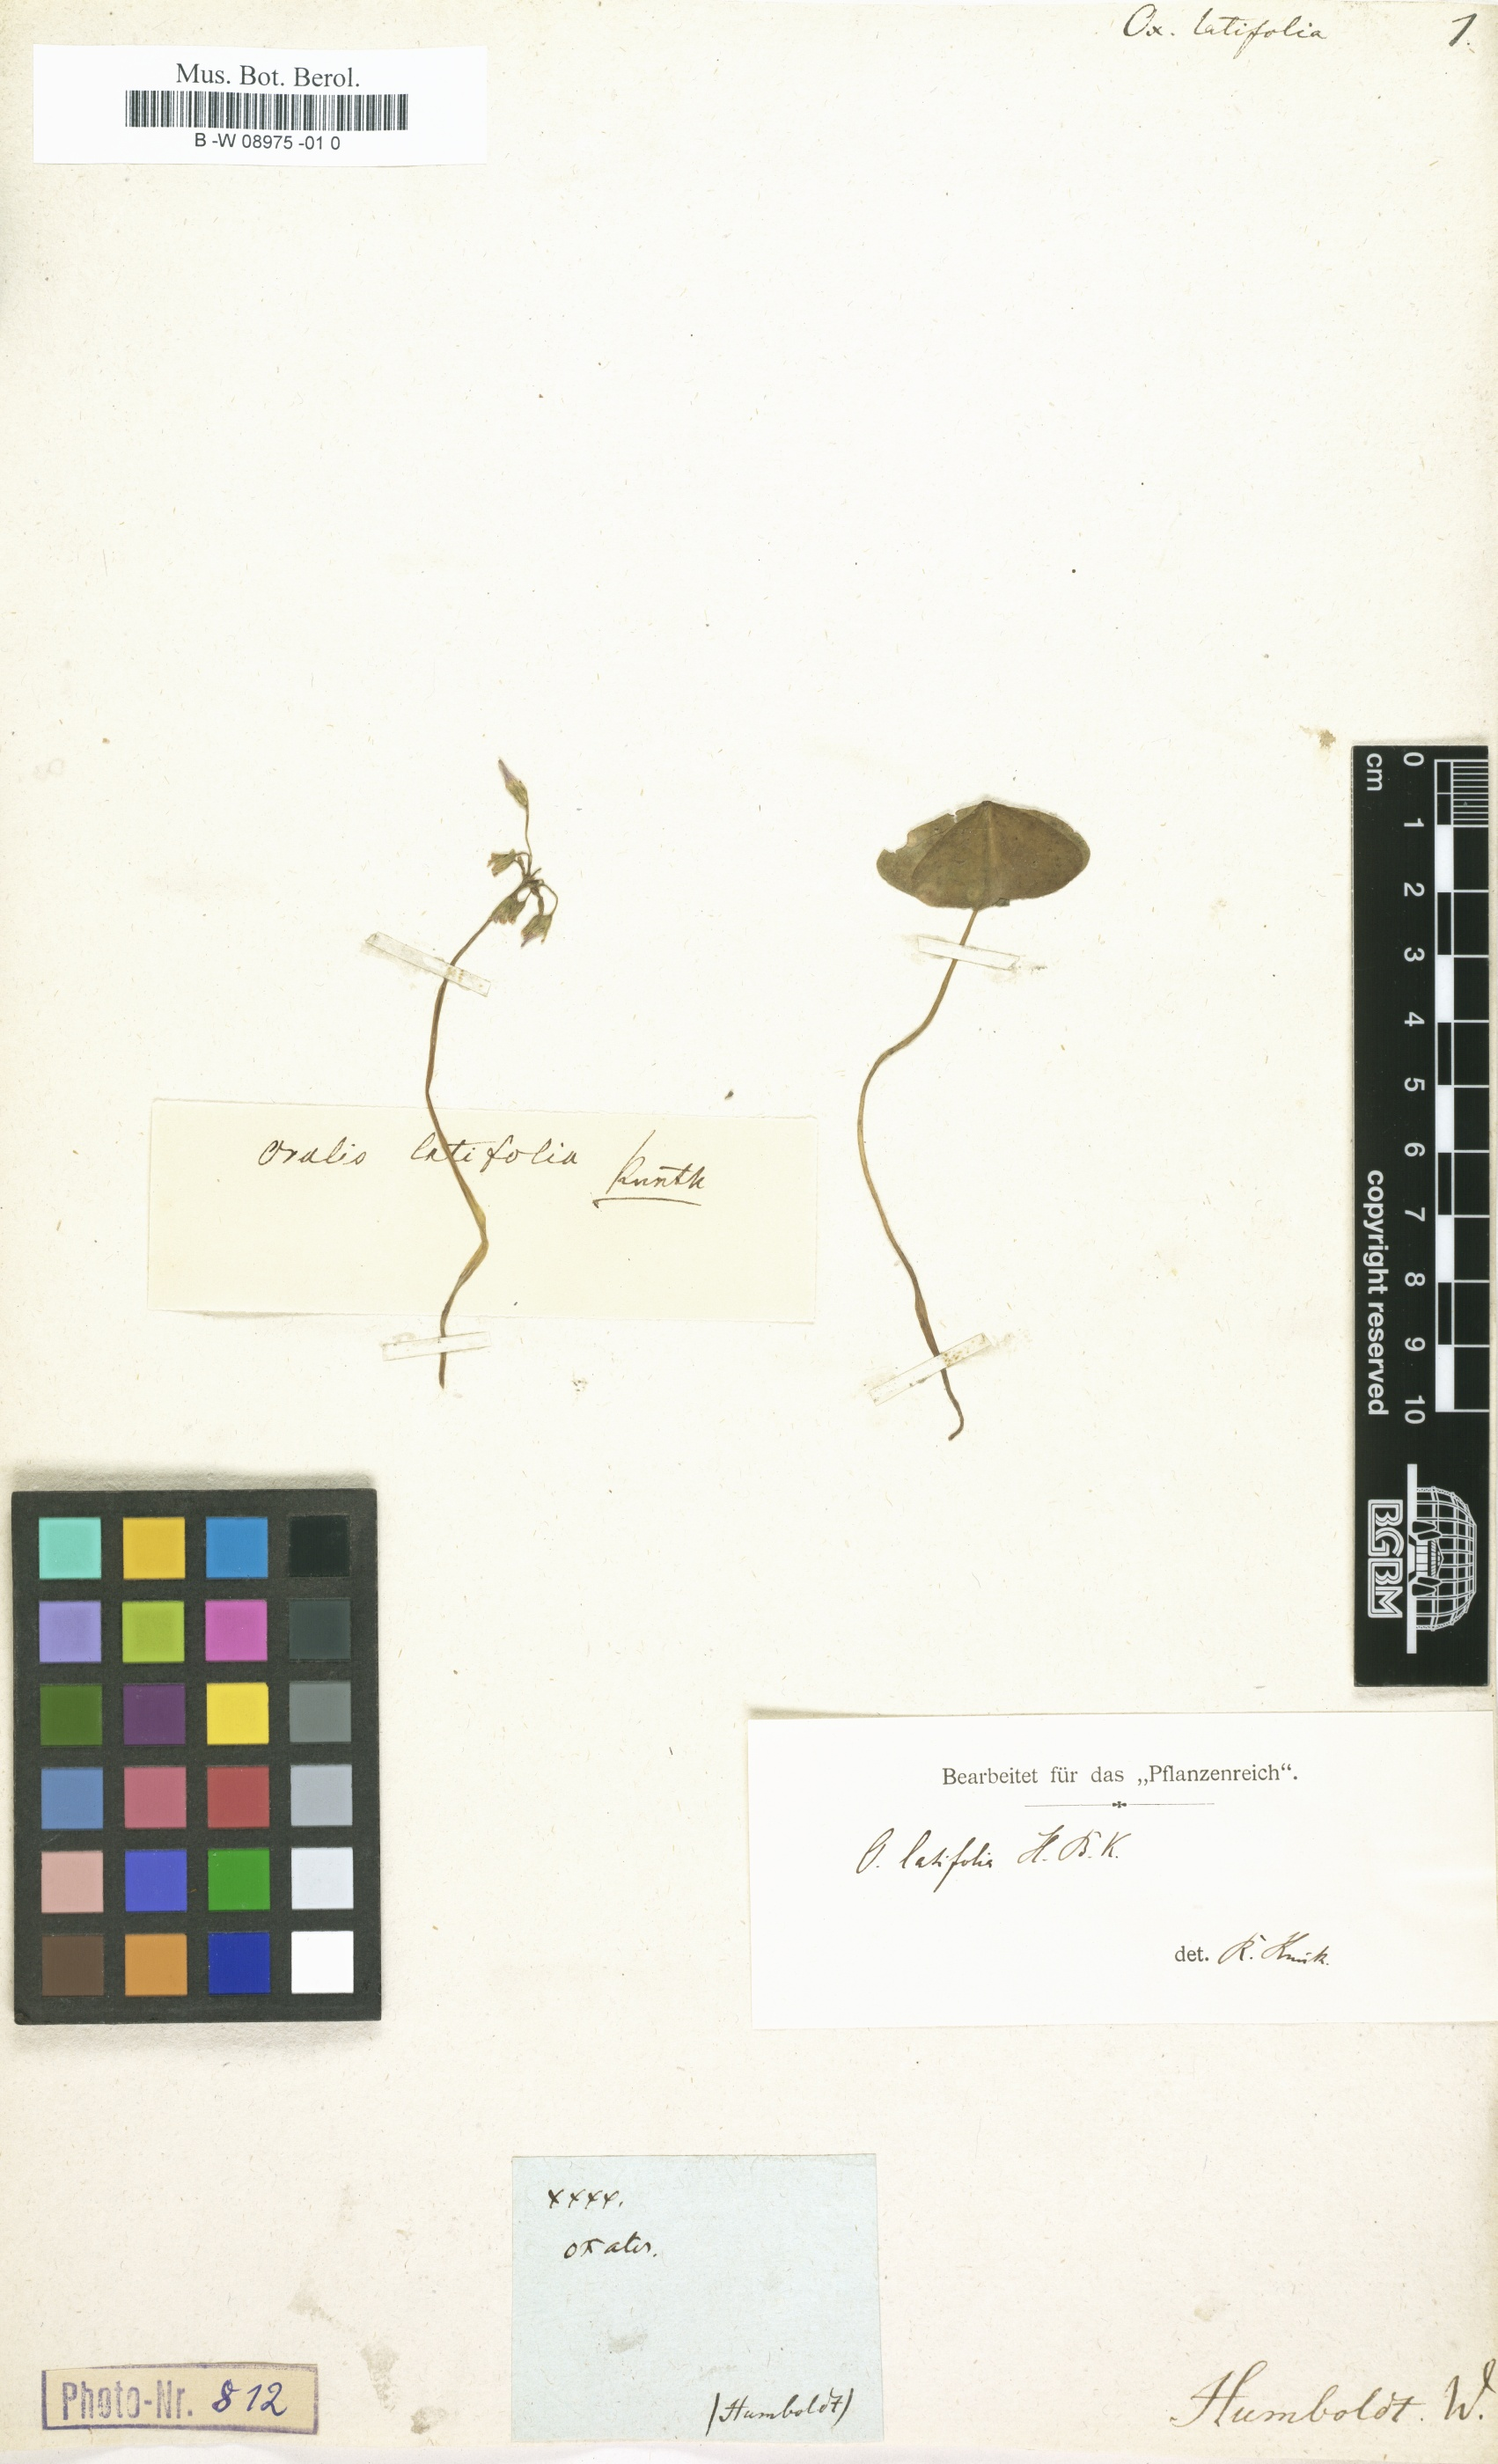 © Botanic Garden and Botanical Museum Berlin-Dahlem, Freie Universität Berlin<br>by Röpert, D. (Ed.) 2000- (continuously updated): Digital specimen images at the Herbarium Berolinense. - Published on the Internet http://ww2.bgbm.org/herbarium/ (Barcode: B -W 08975 -01 0 / ImageId: 291191) [accessed 28-Nov-11].<br>